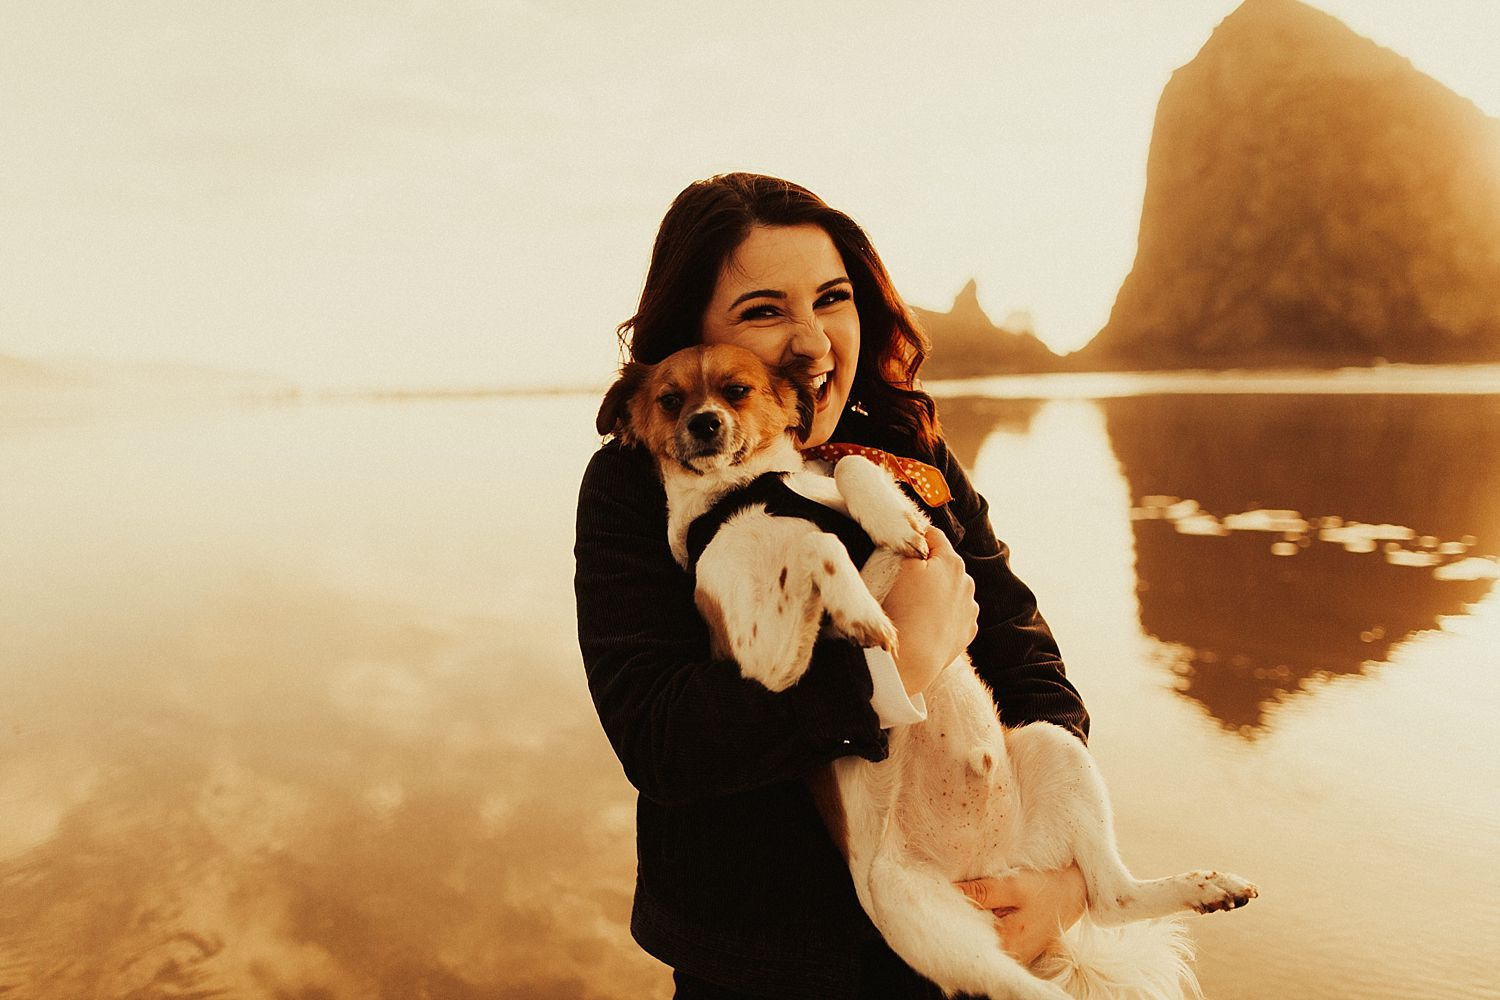 cannon-beach-engagement-session_1445.jpg